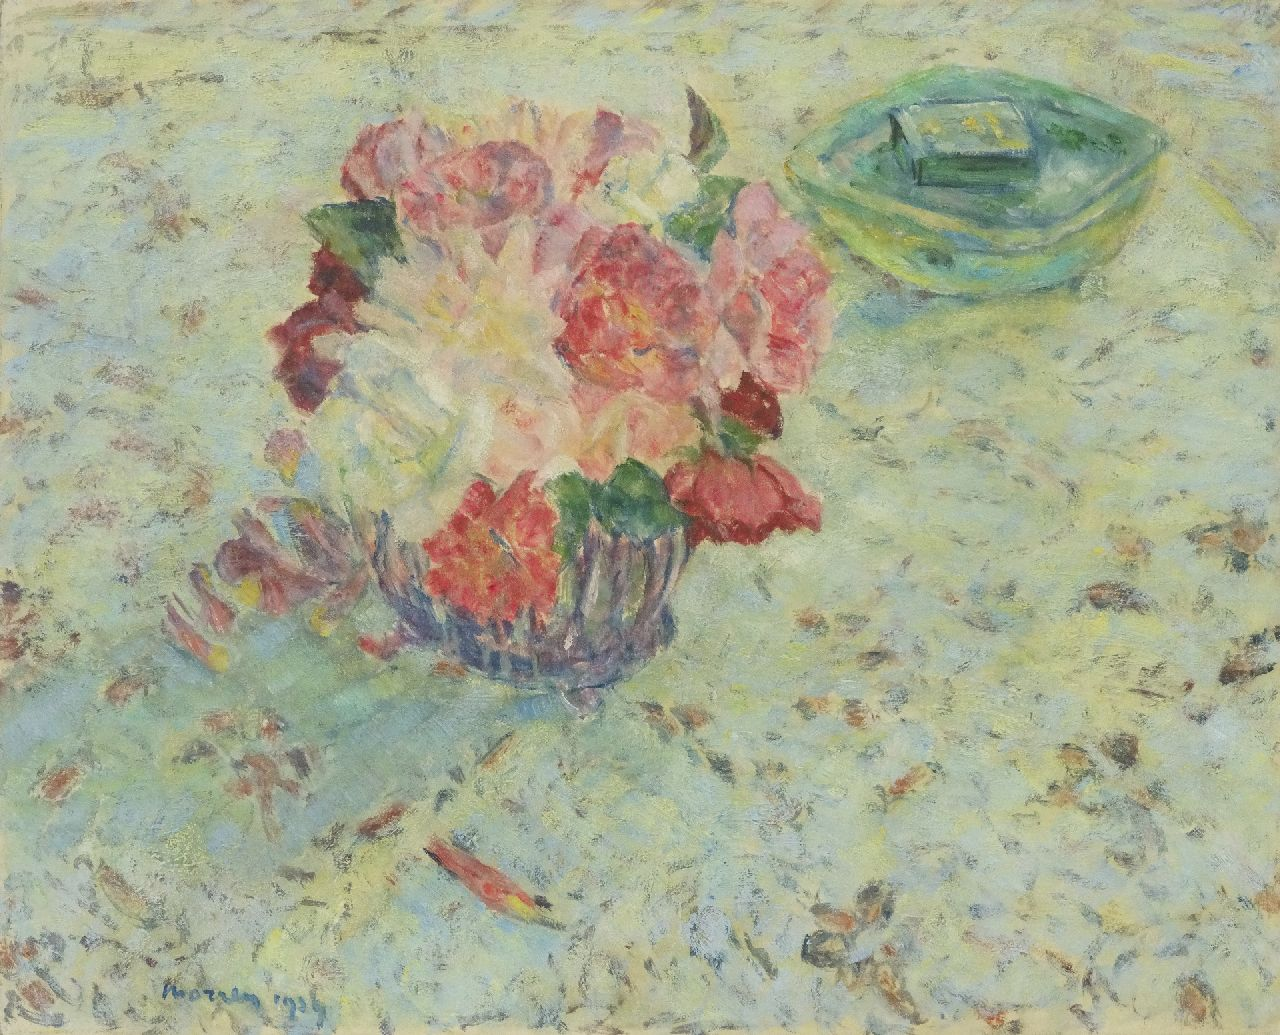 Georges Morren | Roses, oil on canvas, 44.9 x 55.5 cm, signed l.l. and dated 1939